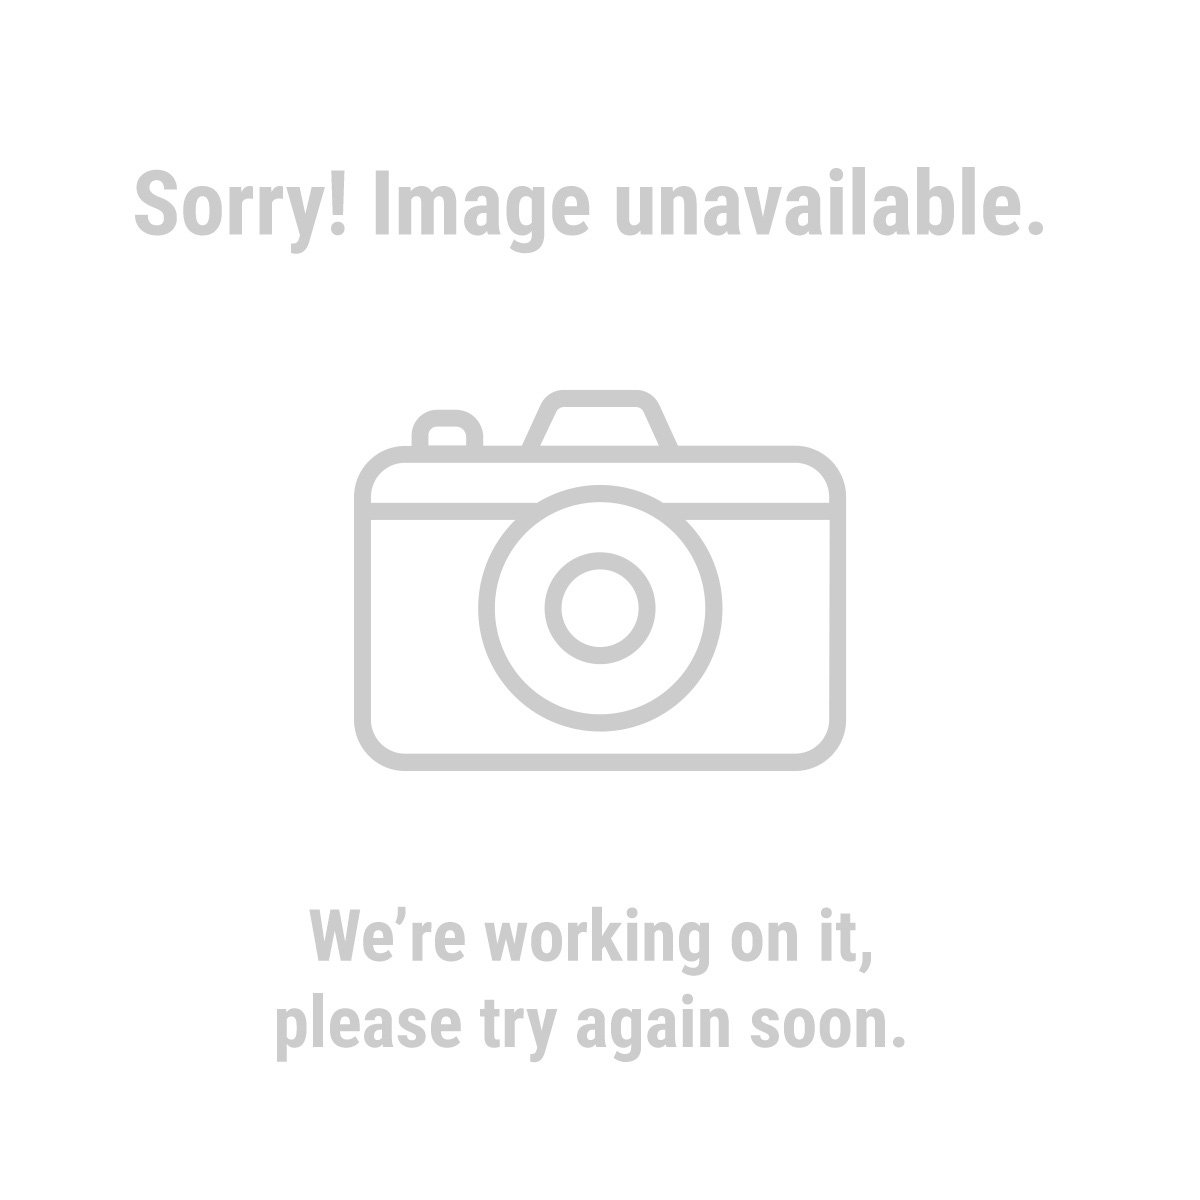 Low Battery Tester Harbor Freight : Pack aa alkaline batteries